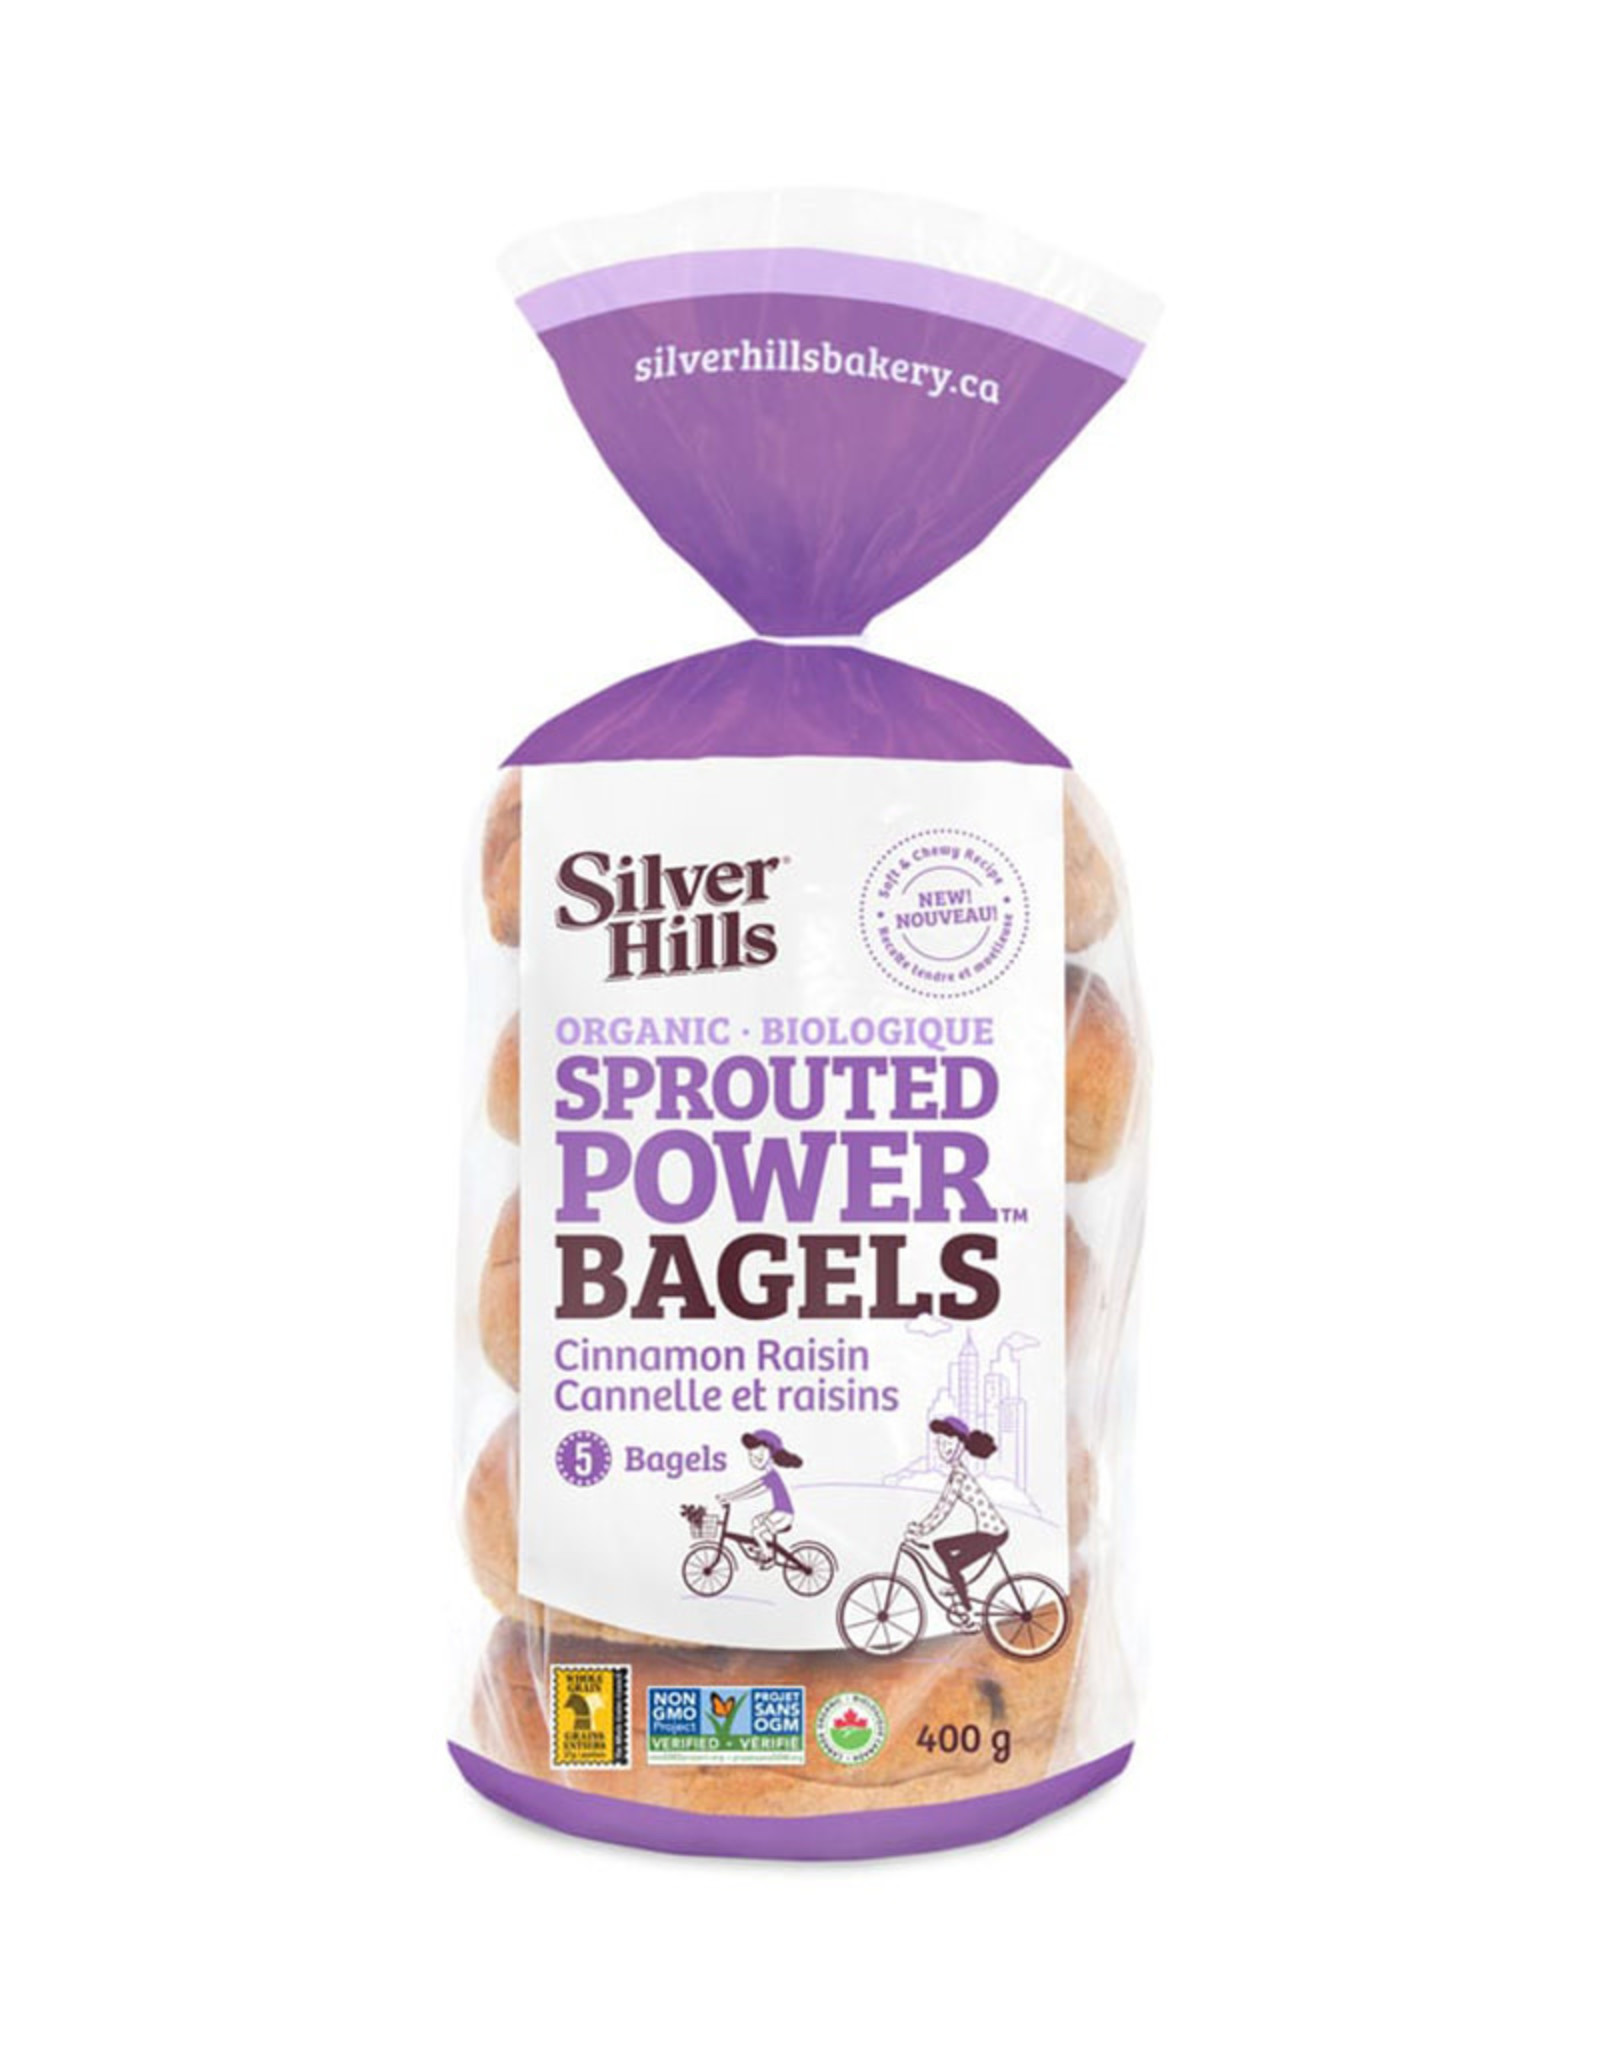 Silver Hills Bakery Silver Hills - Sprouted Bagels, Cinnamon Raisin